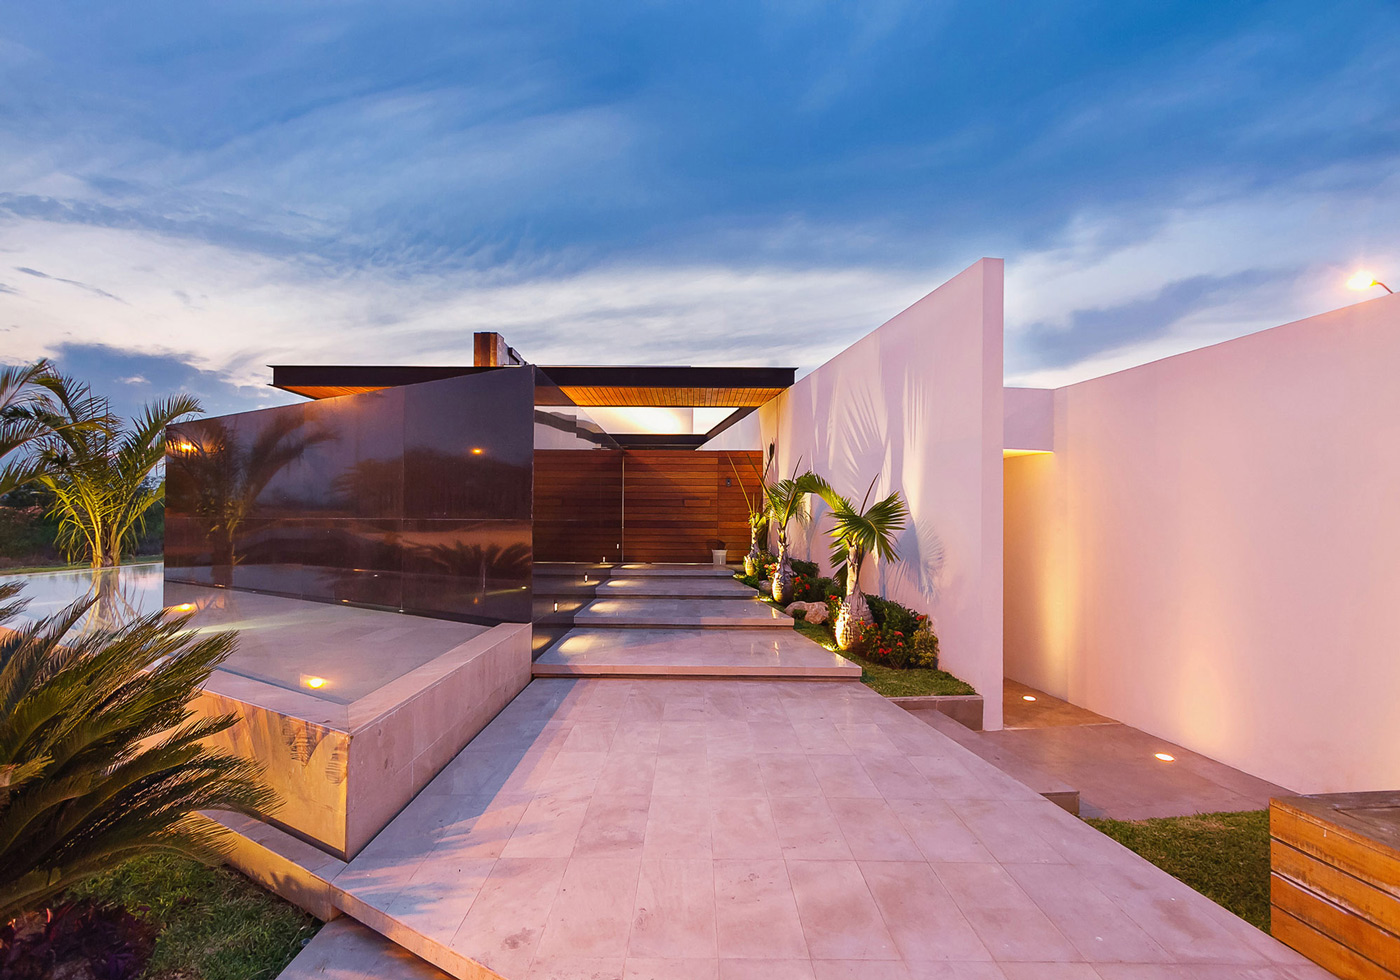 Entrance, Lighting, Marble Tiles, Contemporary Residence in Merida, Yucatan